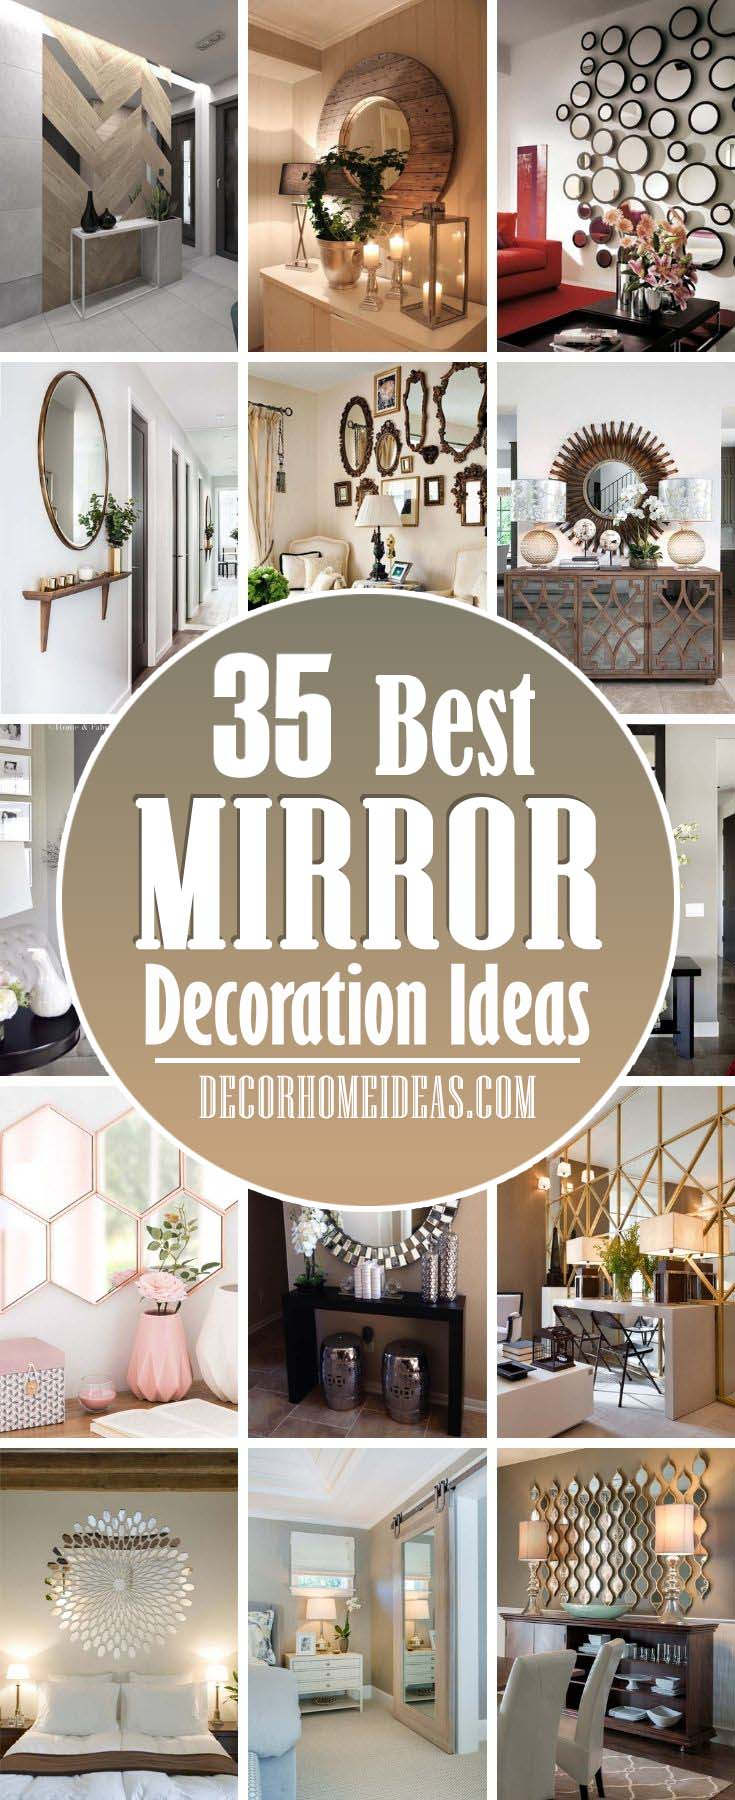 Best Mirror Decoration Ideas. Whether you are planning a renovation or you are in the process of decorating your home, there are many interesting and beautiful mirror ideas. #decorhomeideas